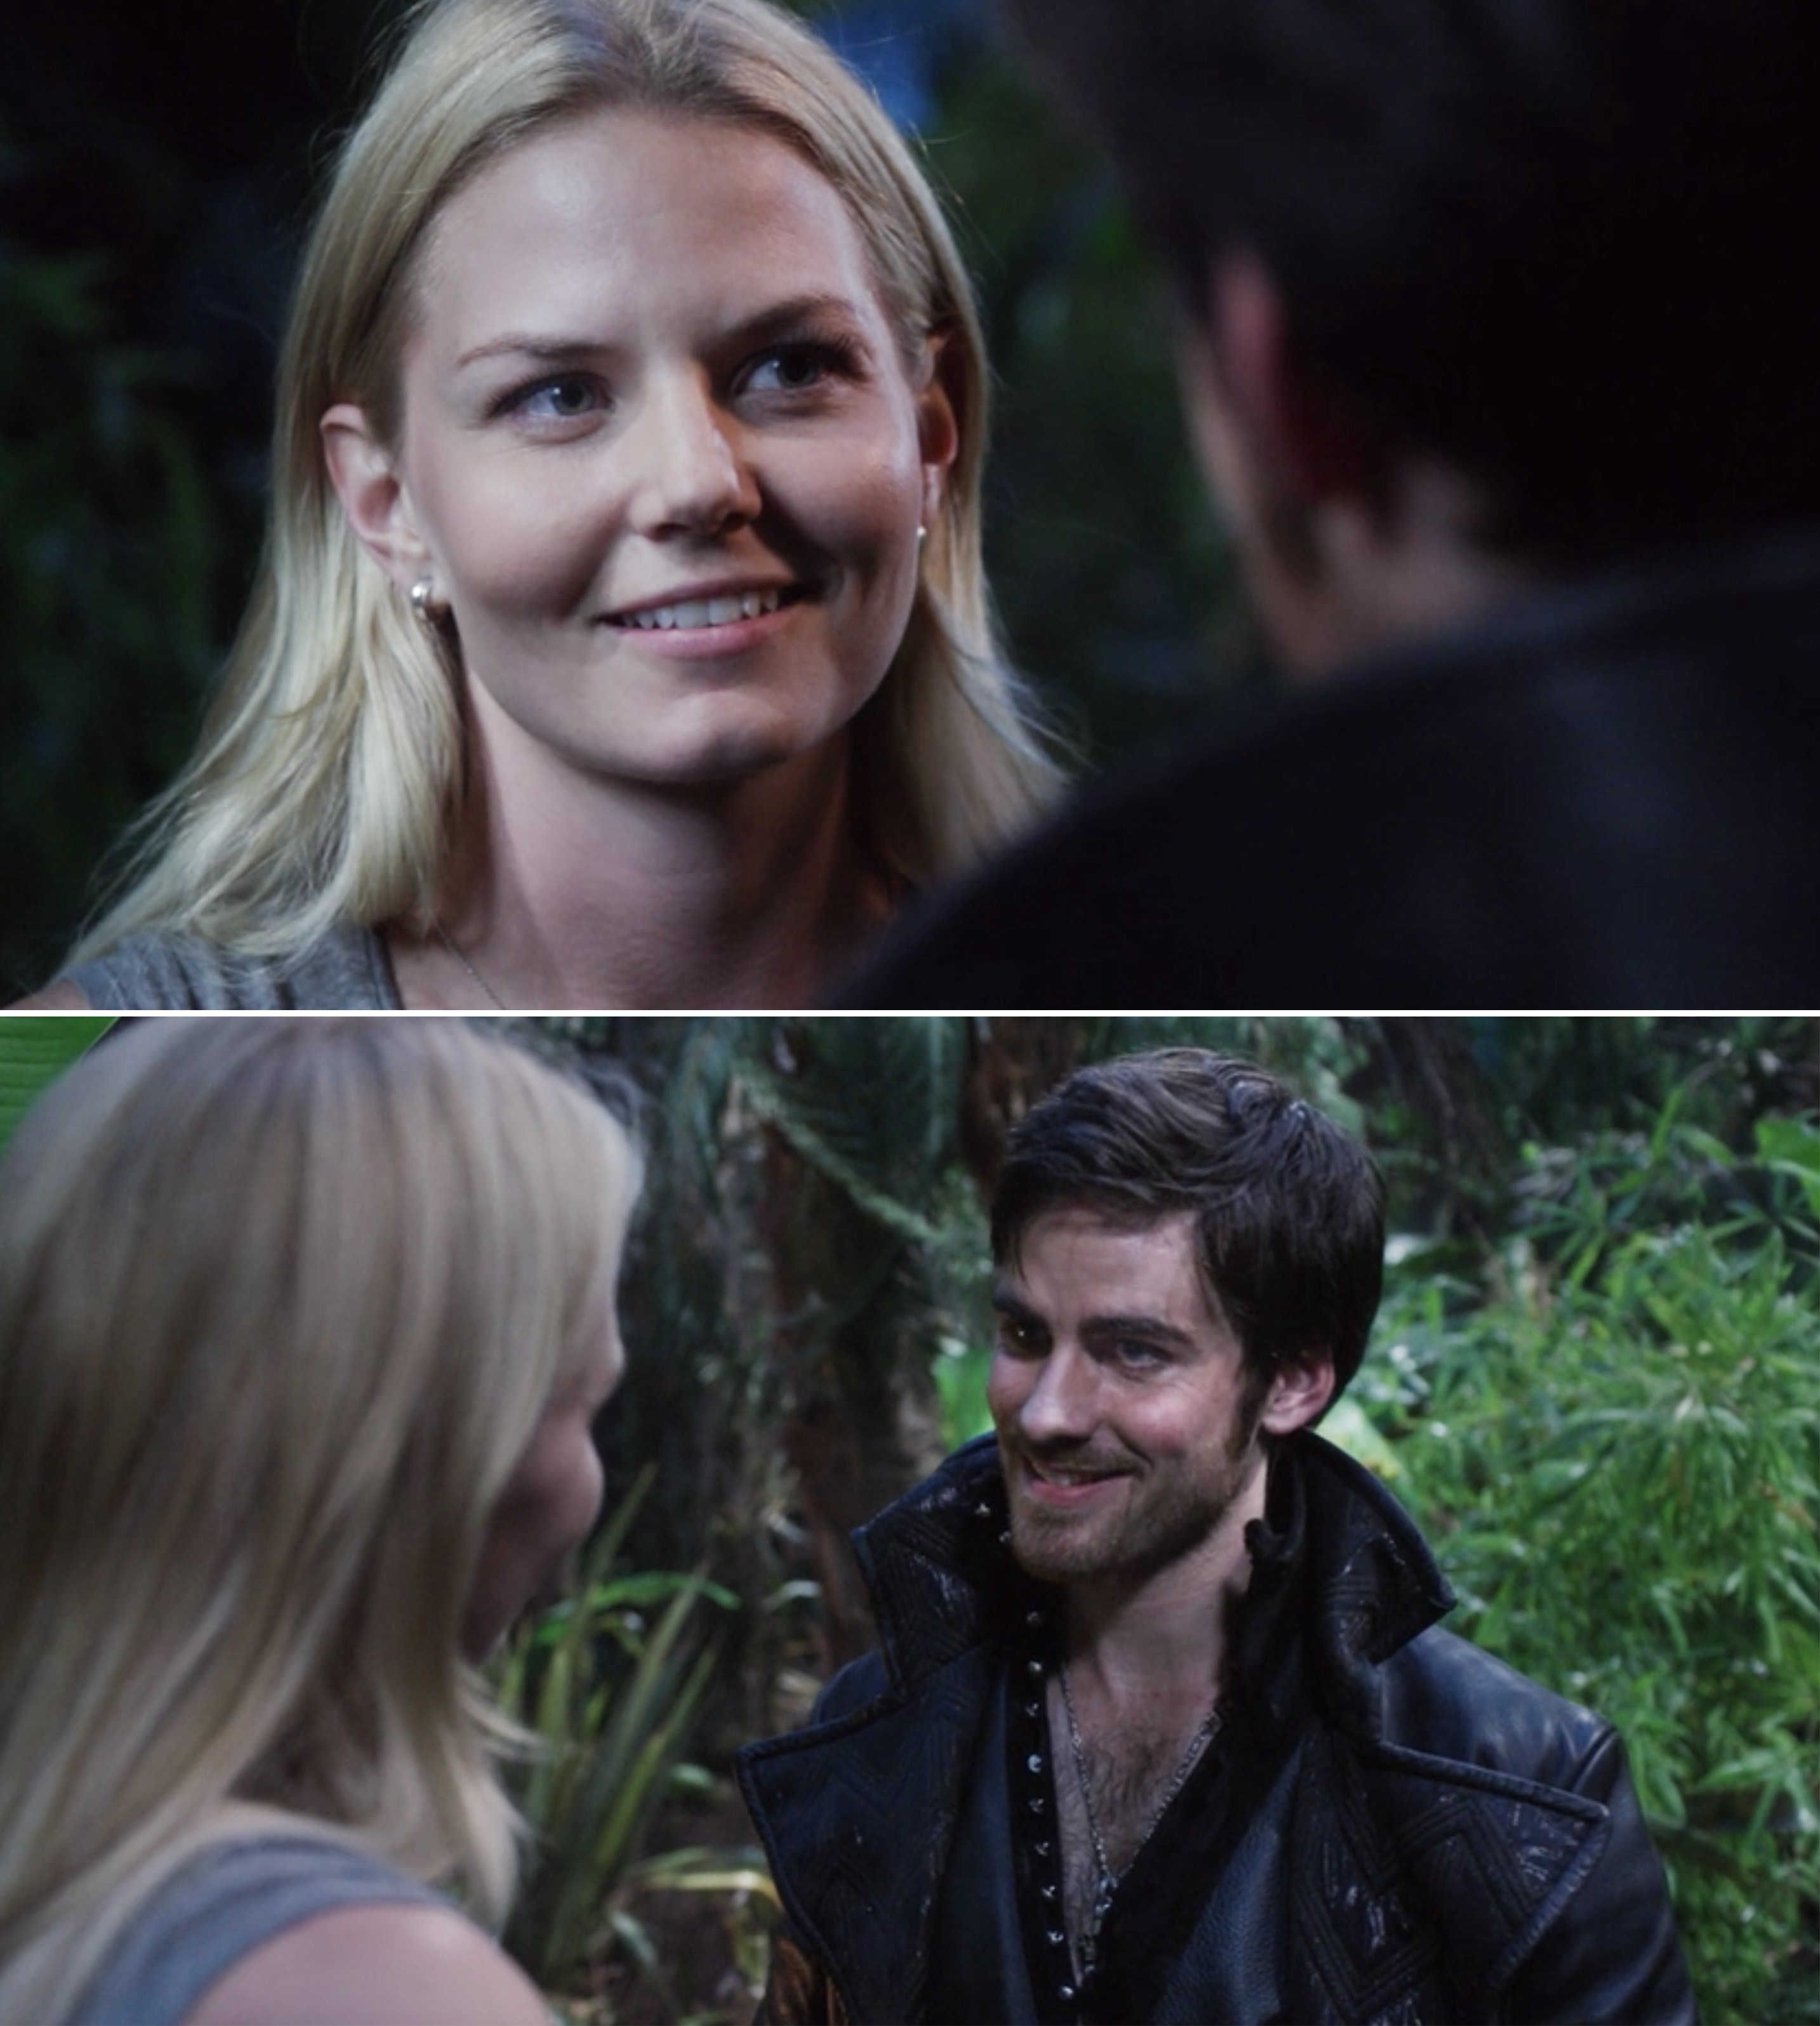 Emma and Hook looking at each other in the forest